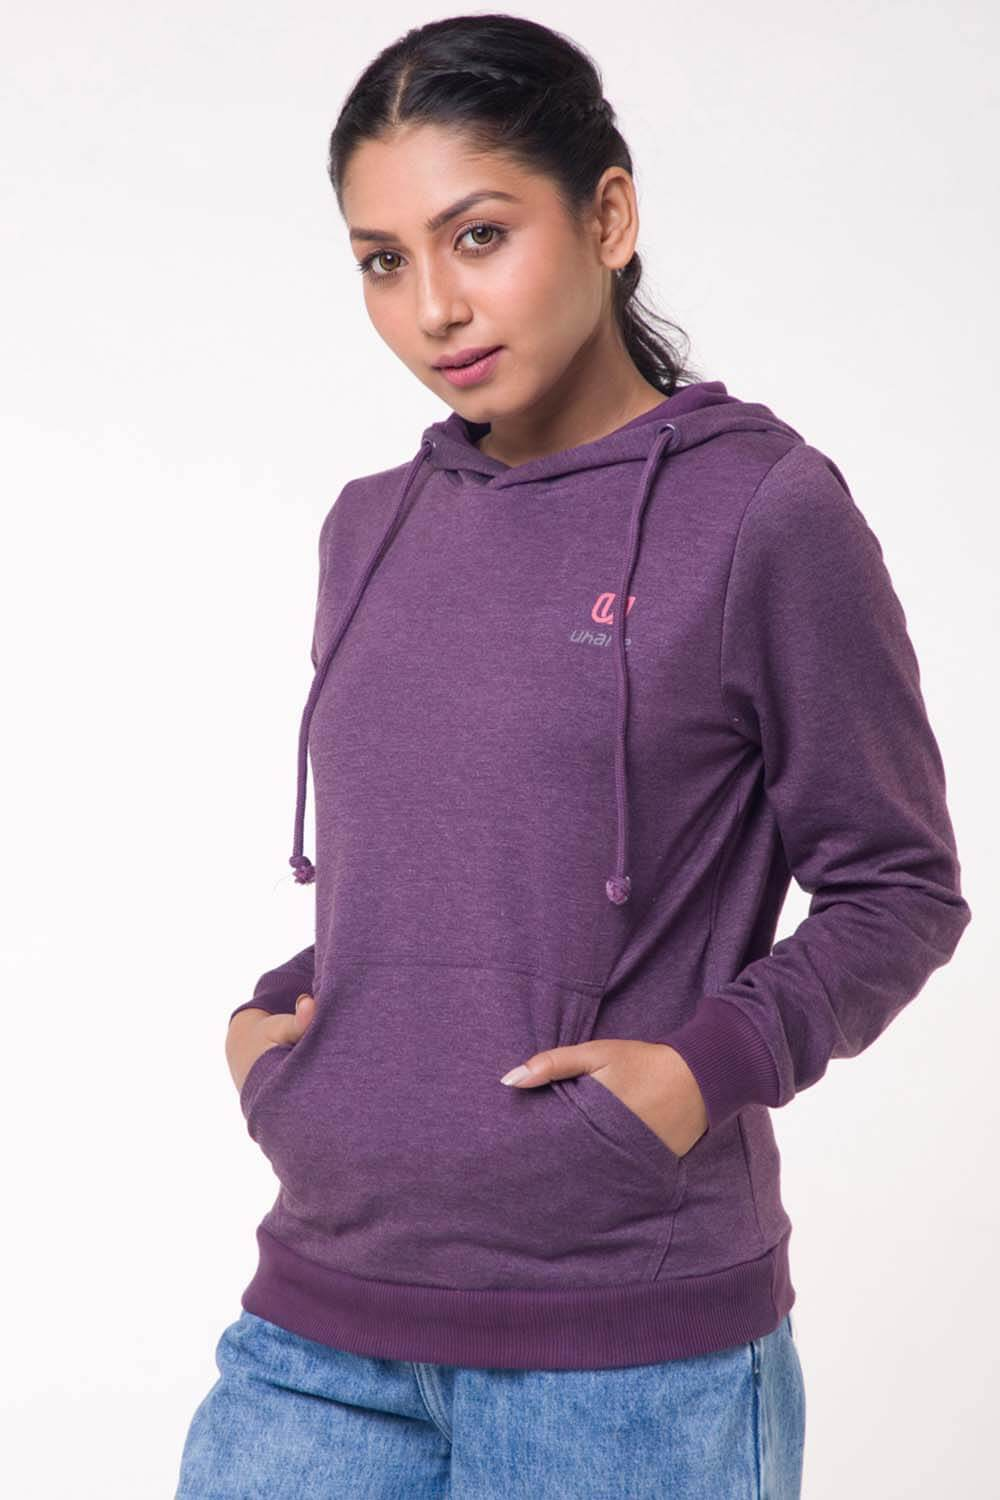 Women's work-out sweaters, jackets and hoodiesType a message